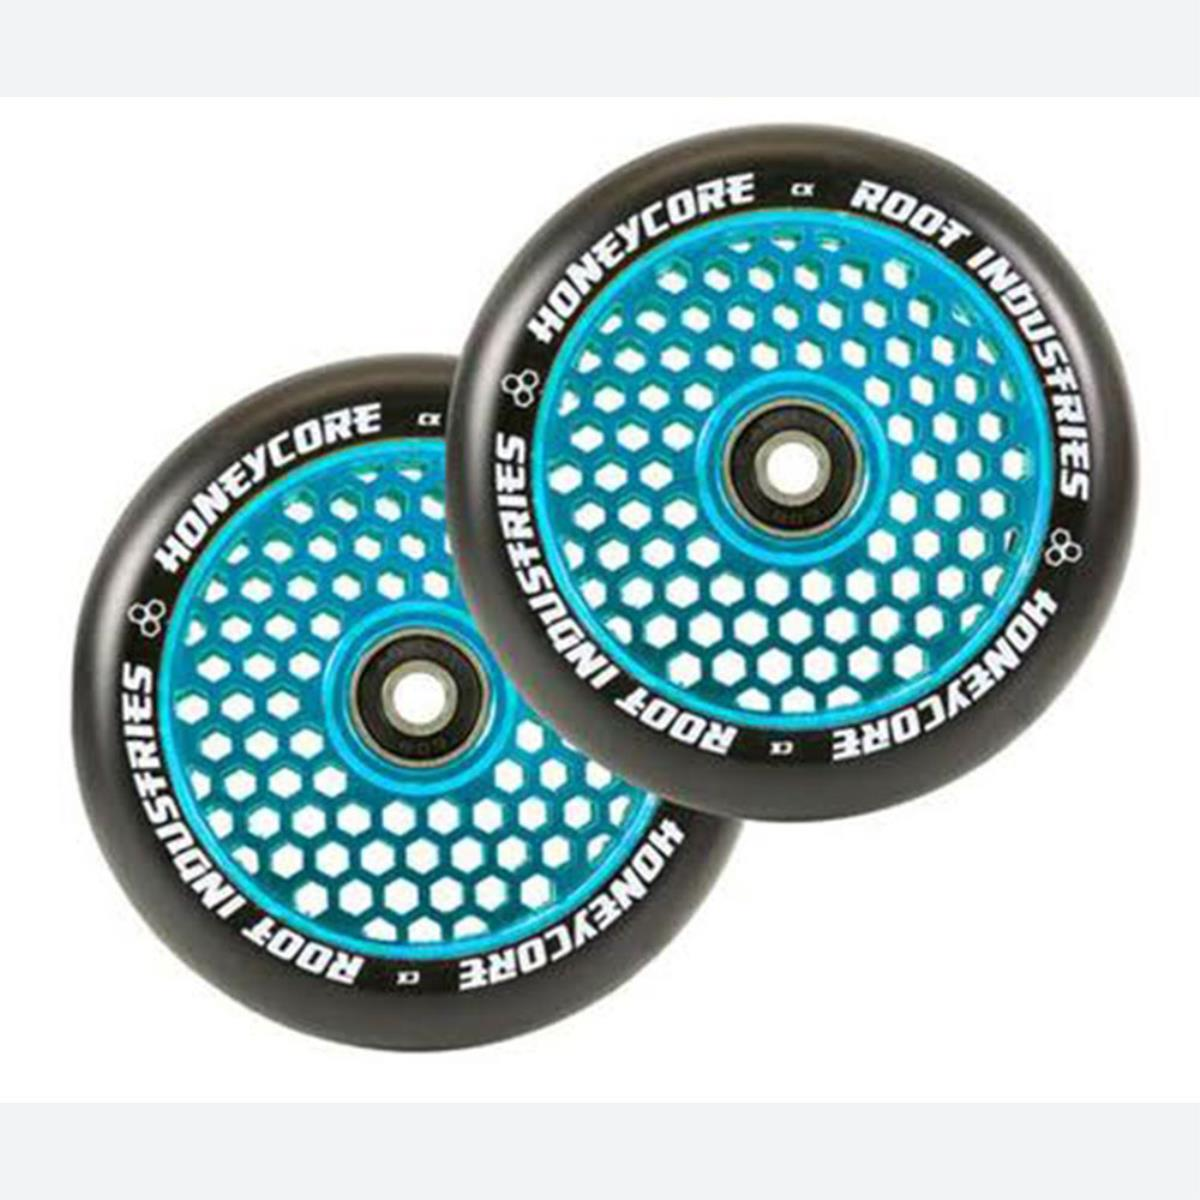 Root Industries Honeycore Radiant 110mm Pro Scooter Wheels 110mm - Blue